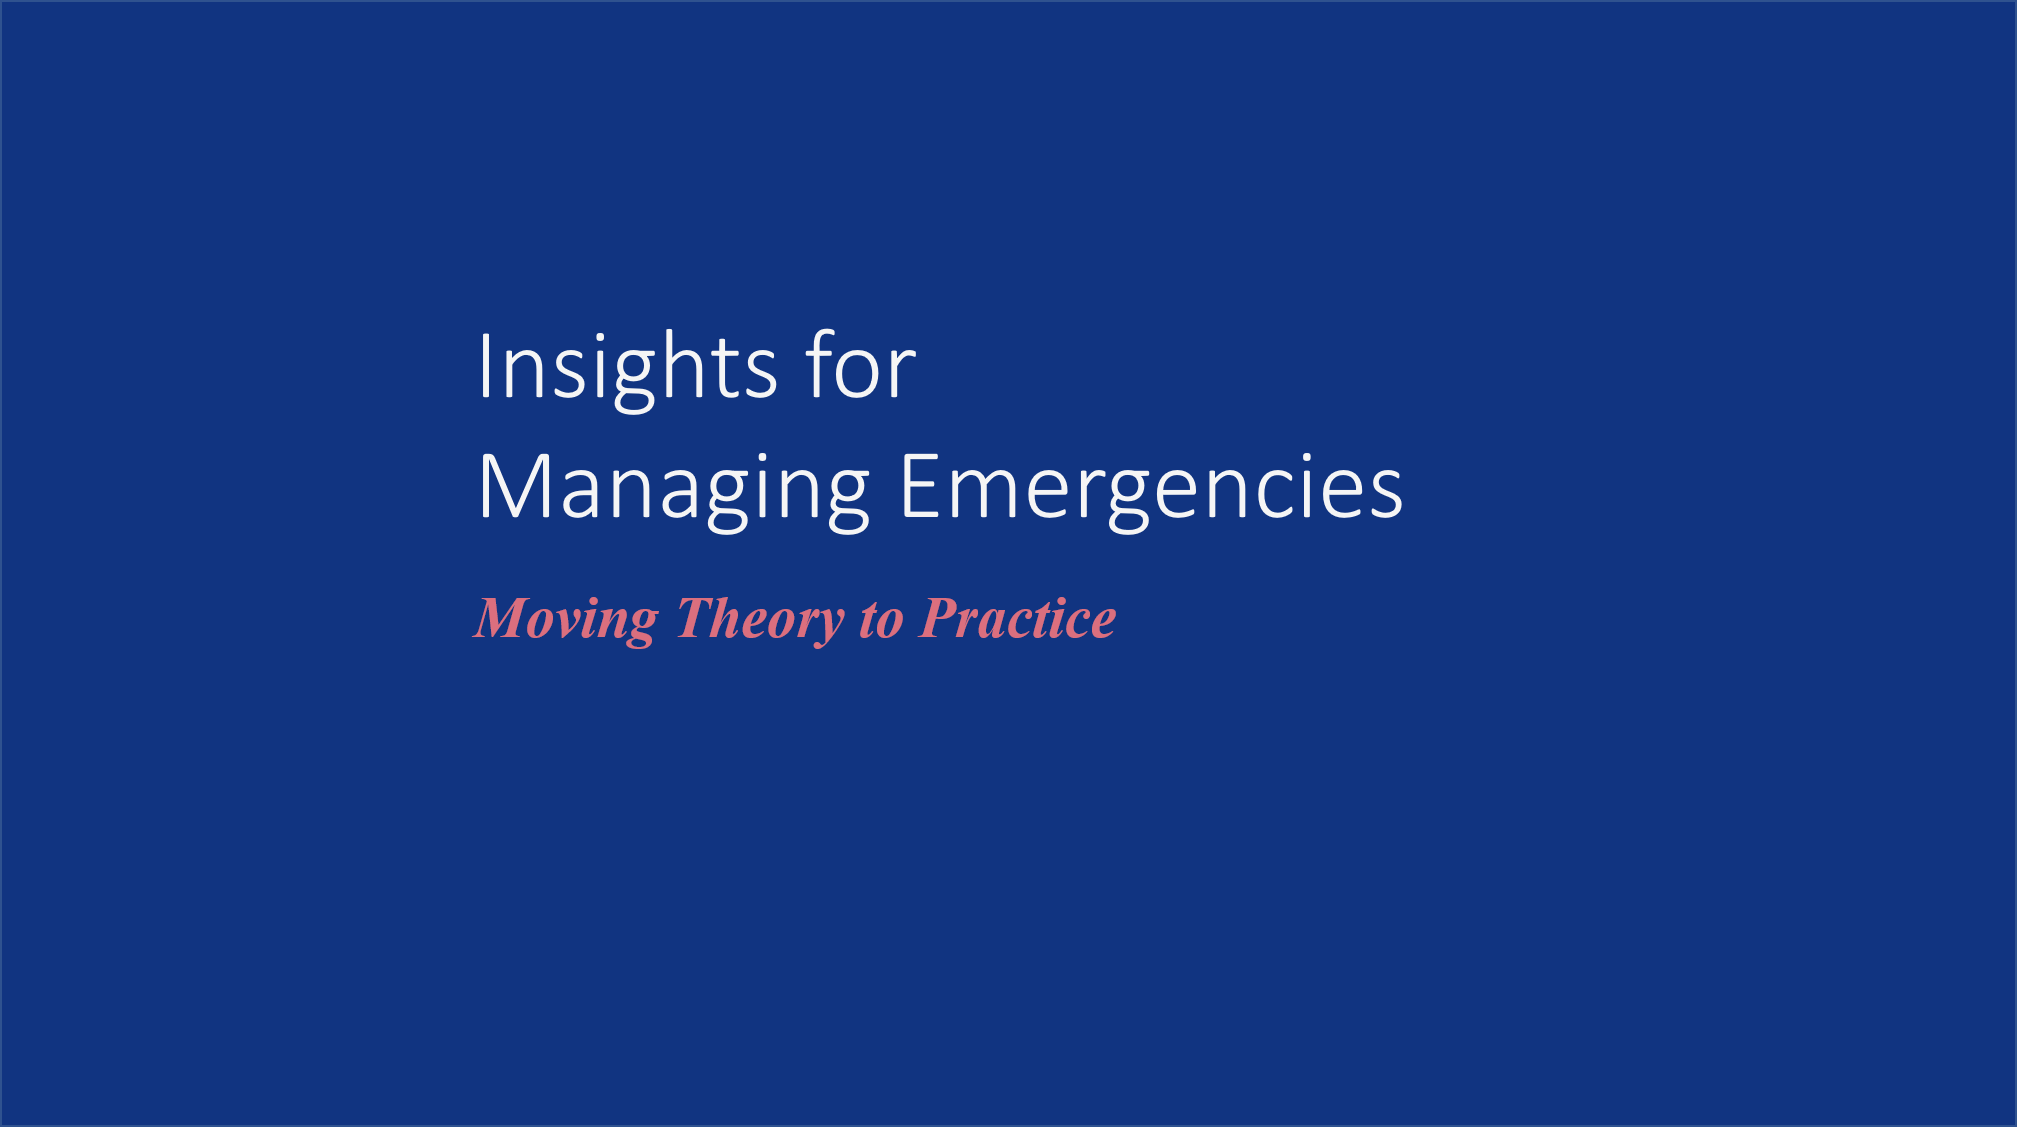 Planning & Organizing with Edgar Morin: Insights for Managing Emergencies